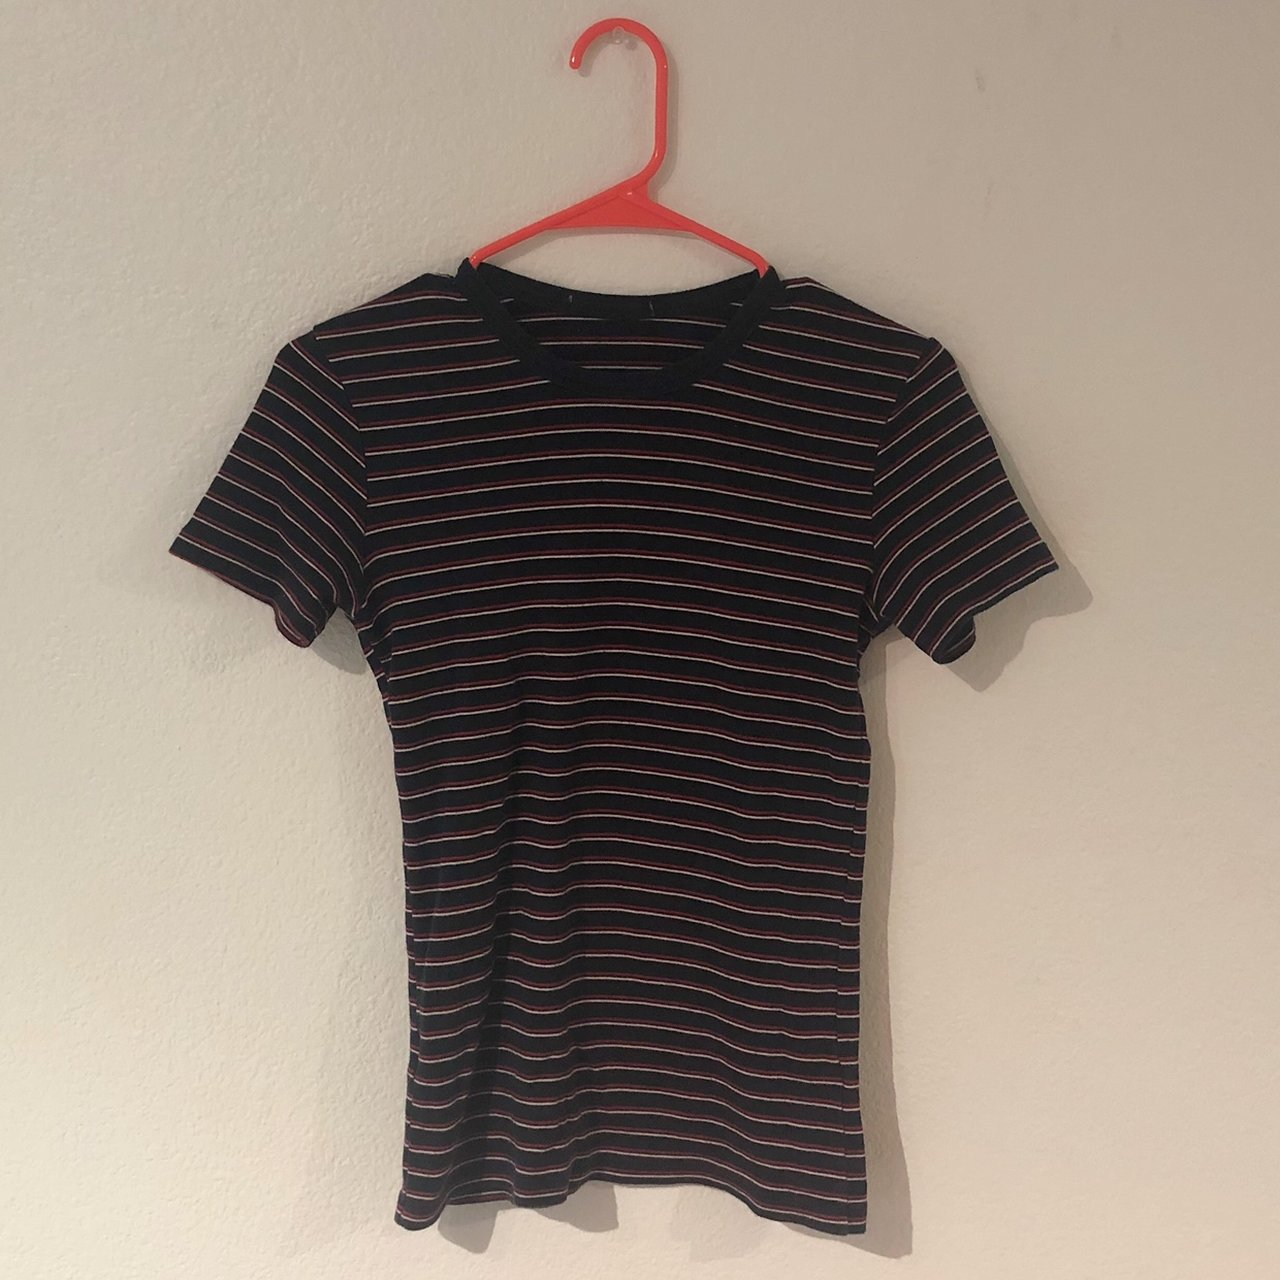 75f34708618 🎆🌜STRIPED BRANDY TEE🌛🎆 would fit from